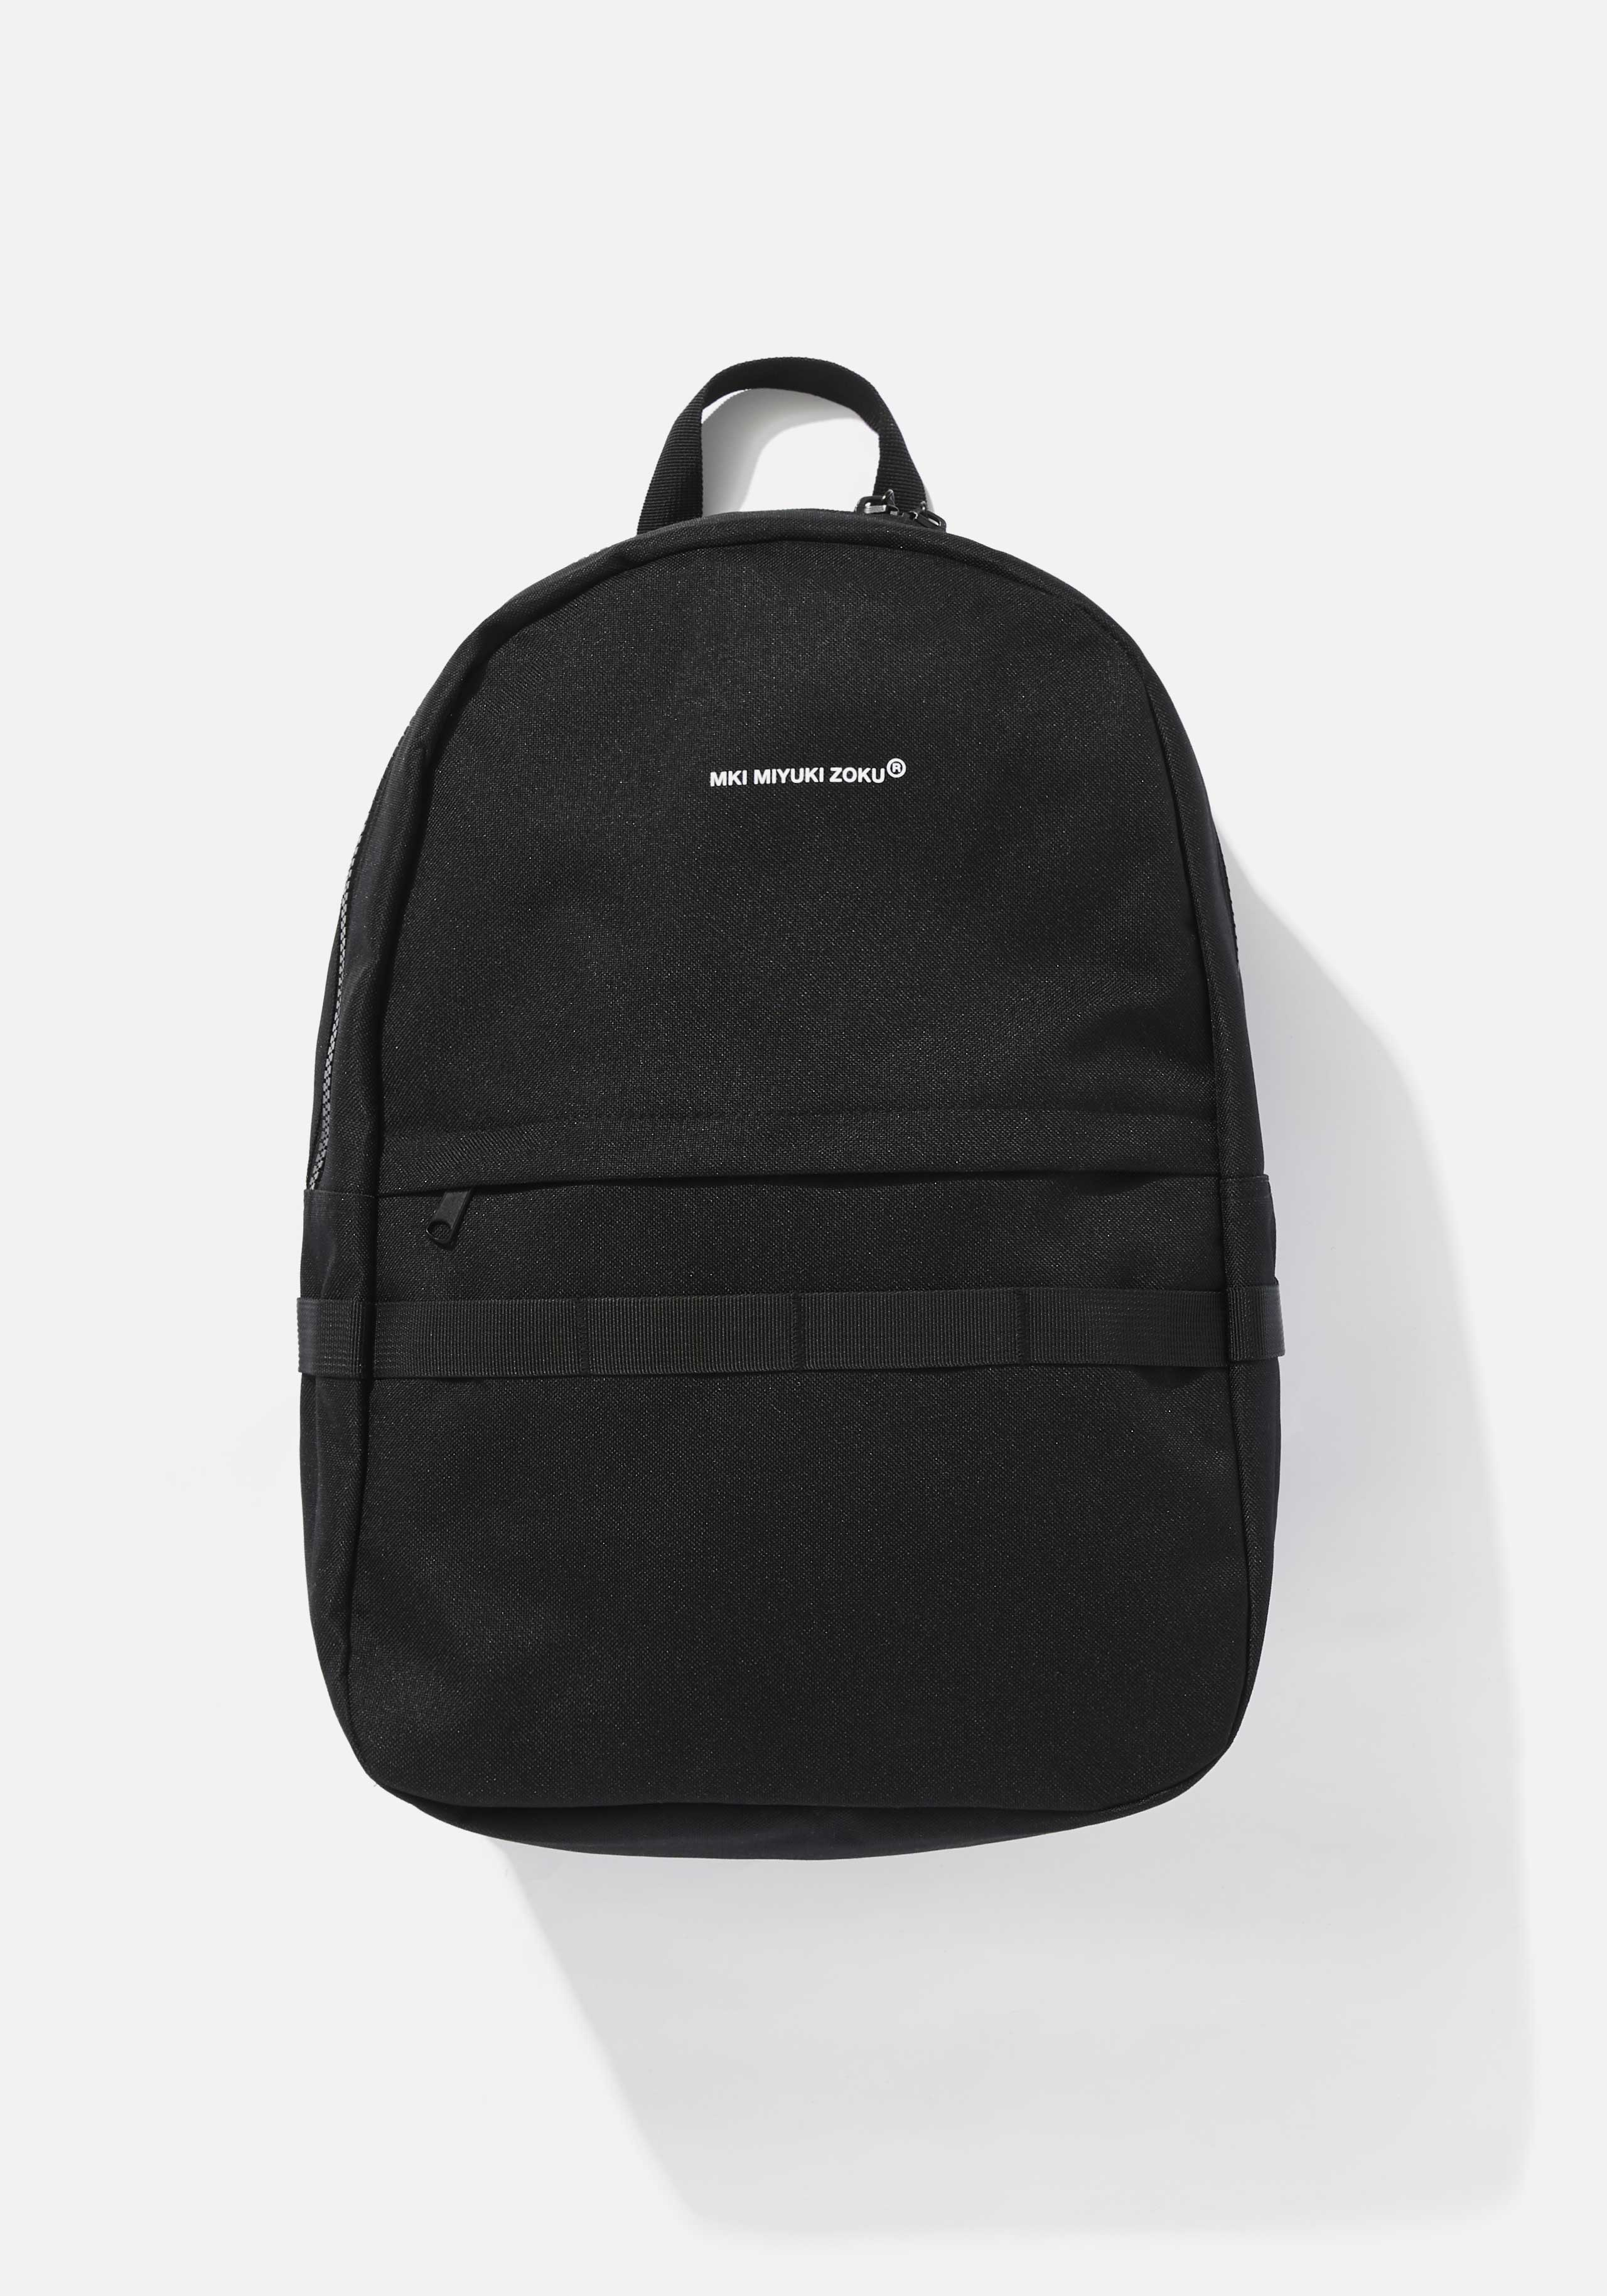 mki itc backpack 1